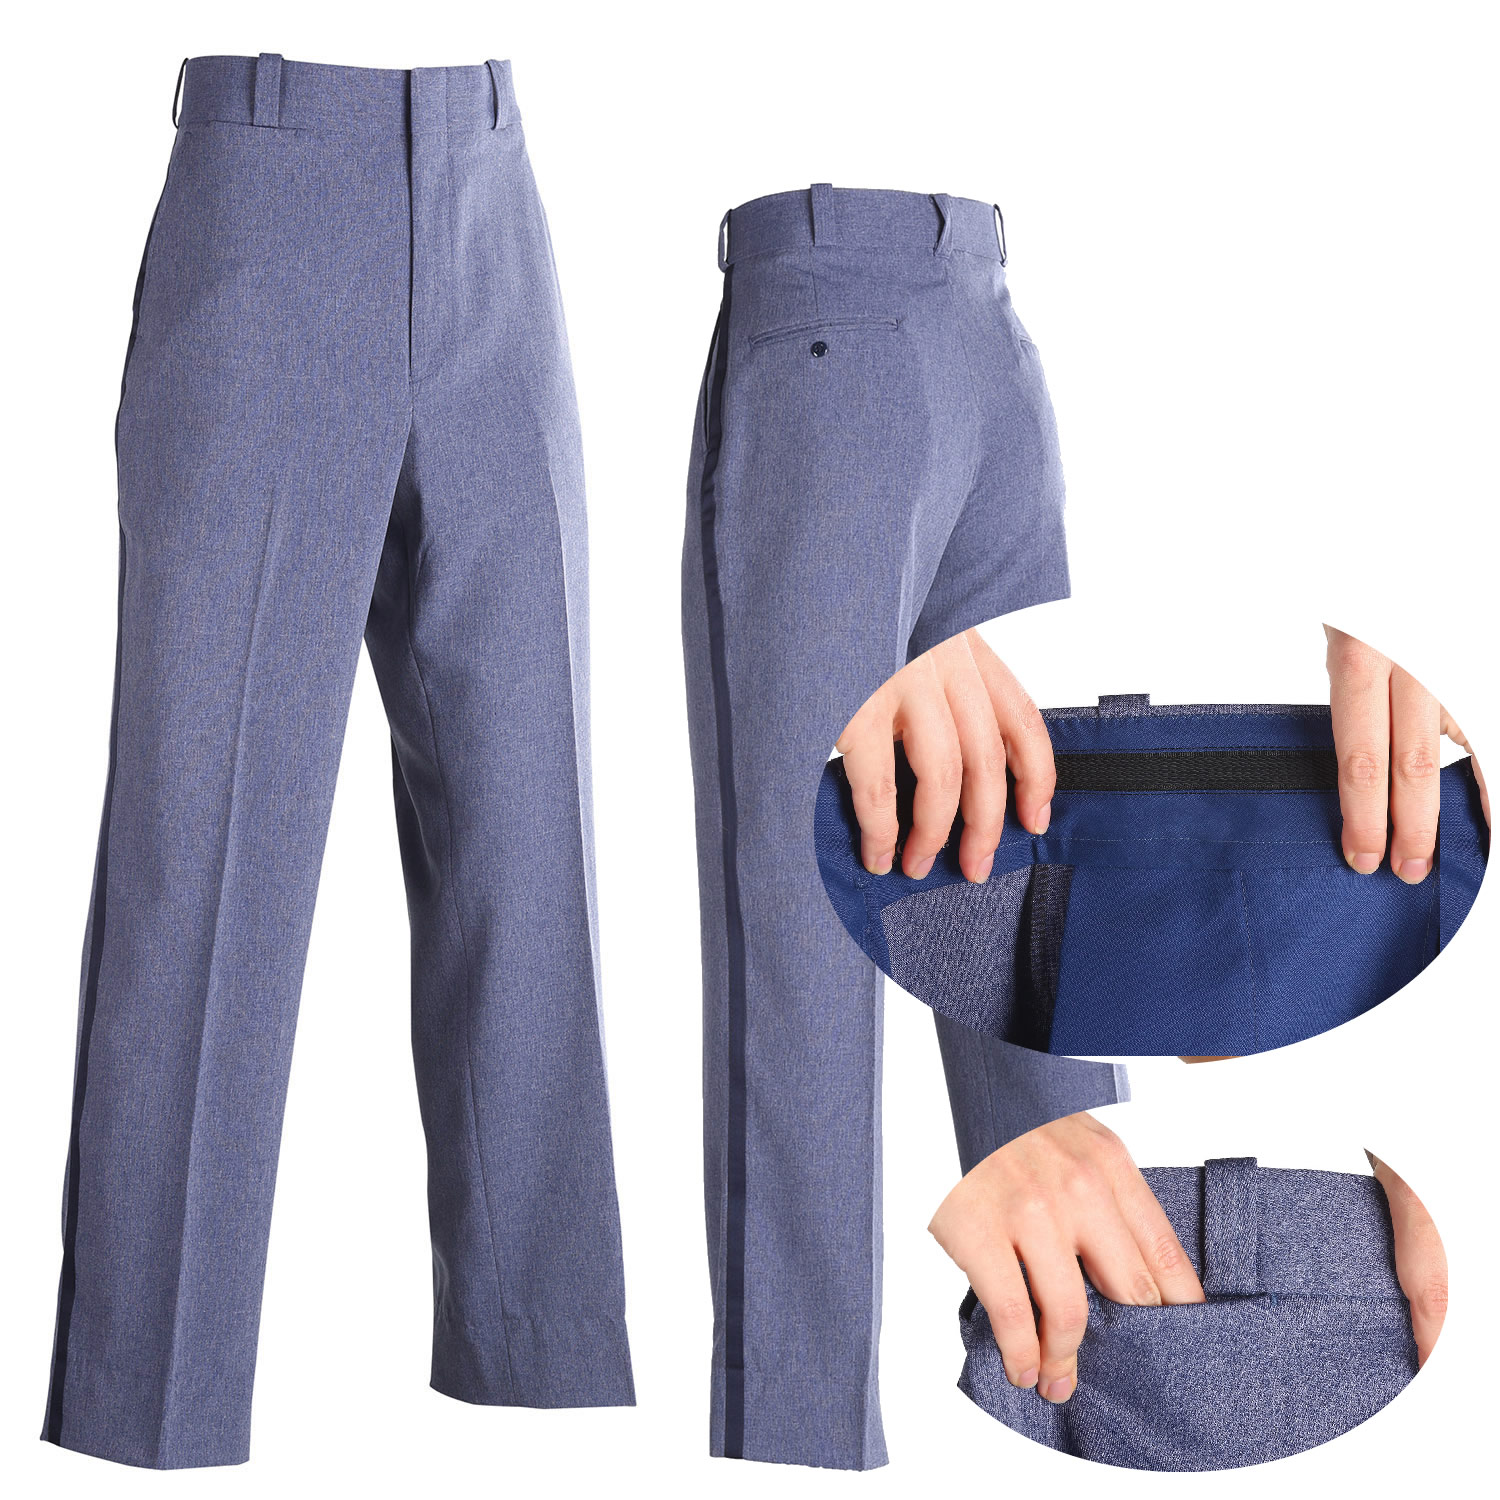 men 39 s postal uniform relaxed cut style winter weight trouser. Black Bedroom Furniture Sets. Home Design Ideas